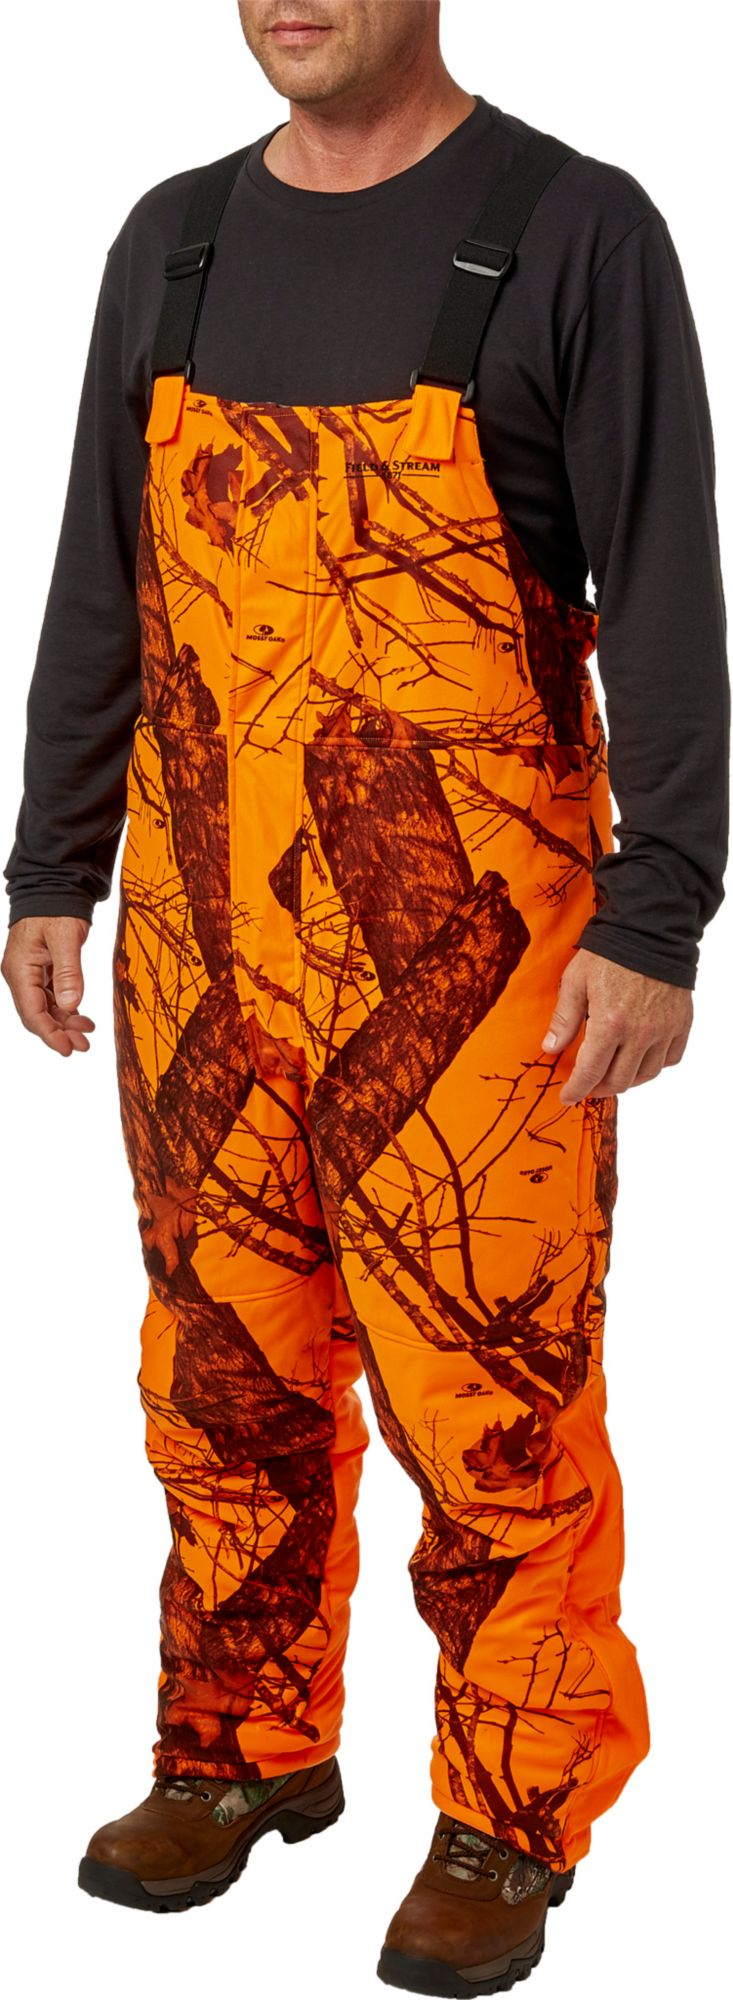 Field & Stream Men's Command Hunt Reversible System Bibs, XXL, Mossy Oak Country